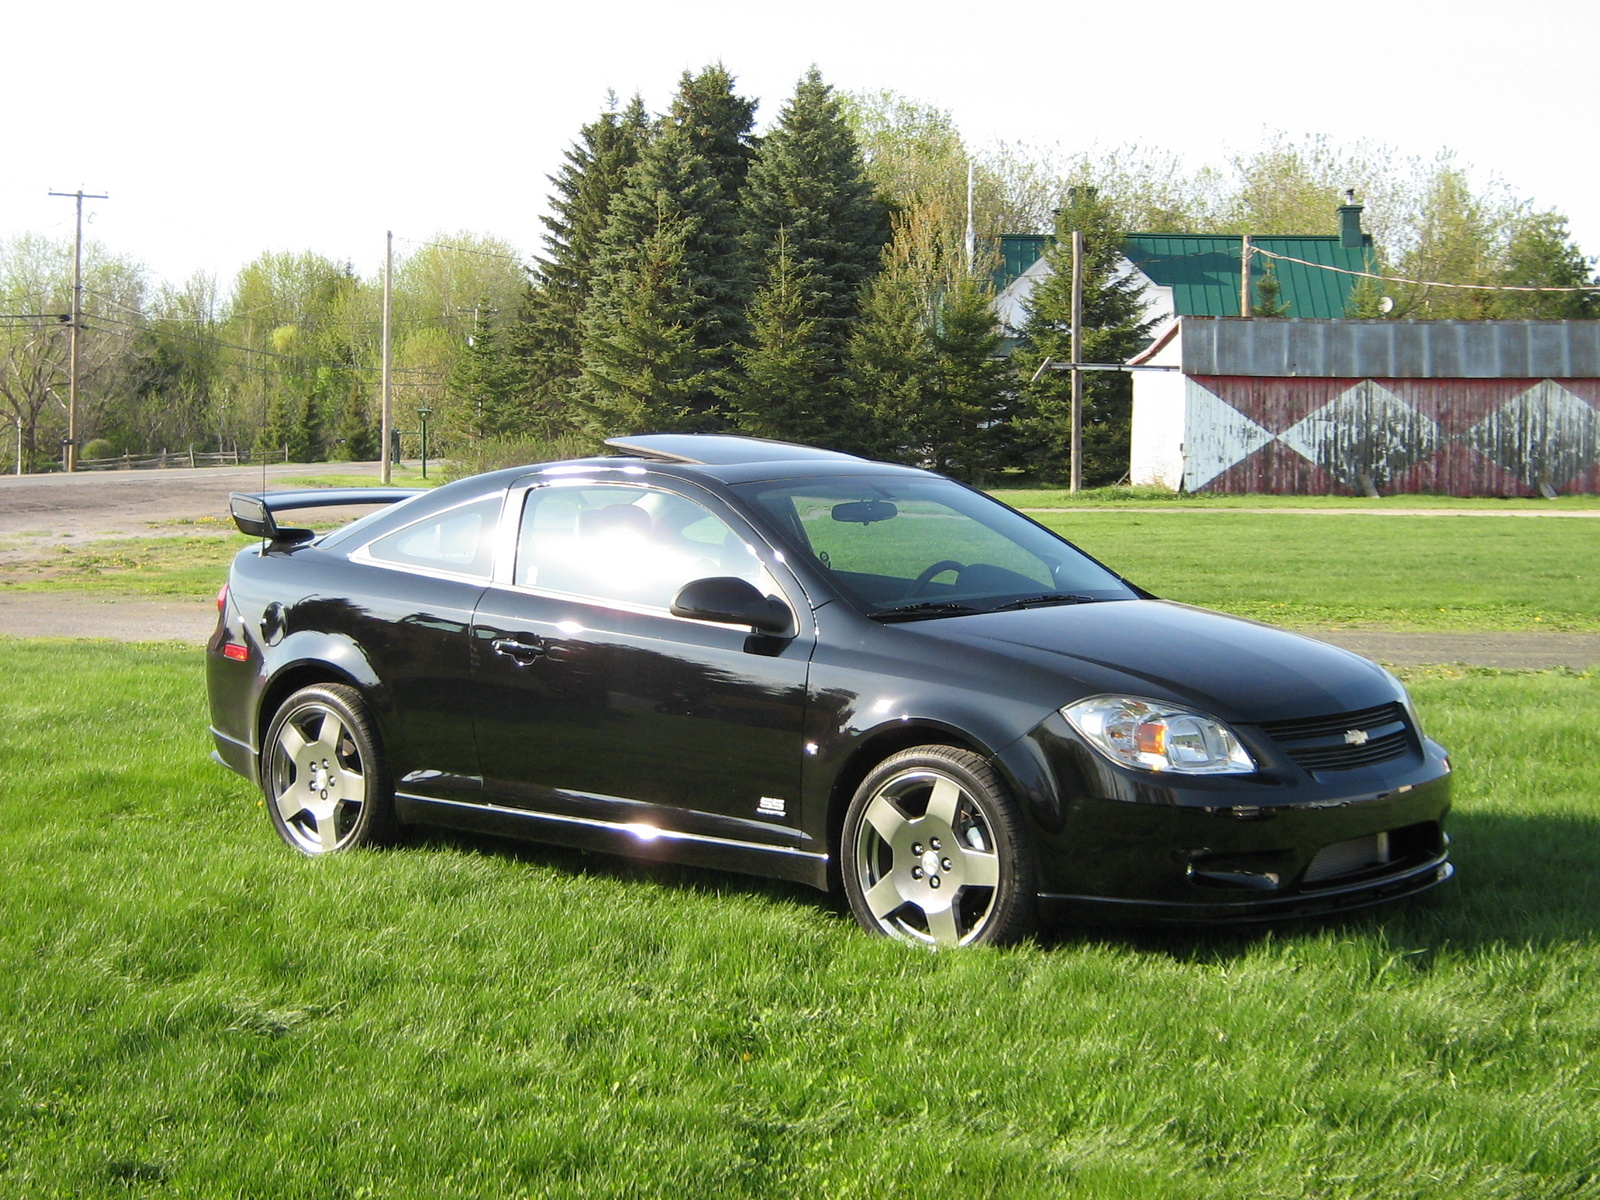 2007 chevrolet cobalt pictures cargurus. Black Bedroom Furniture Sets. Home Design Ideas